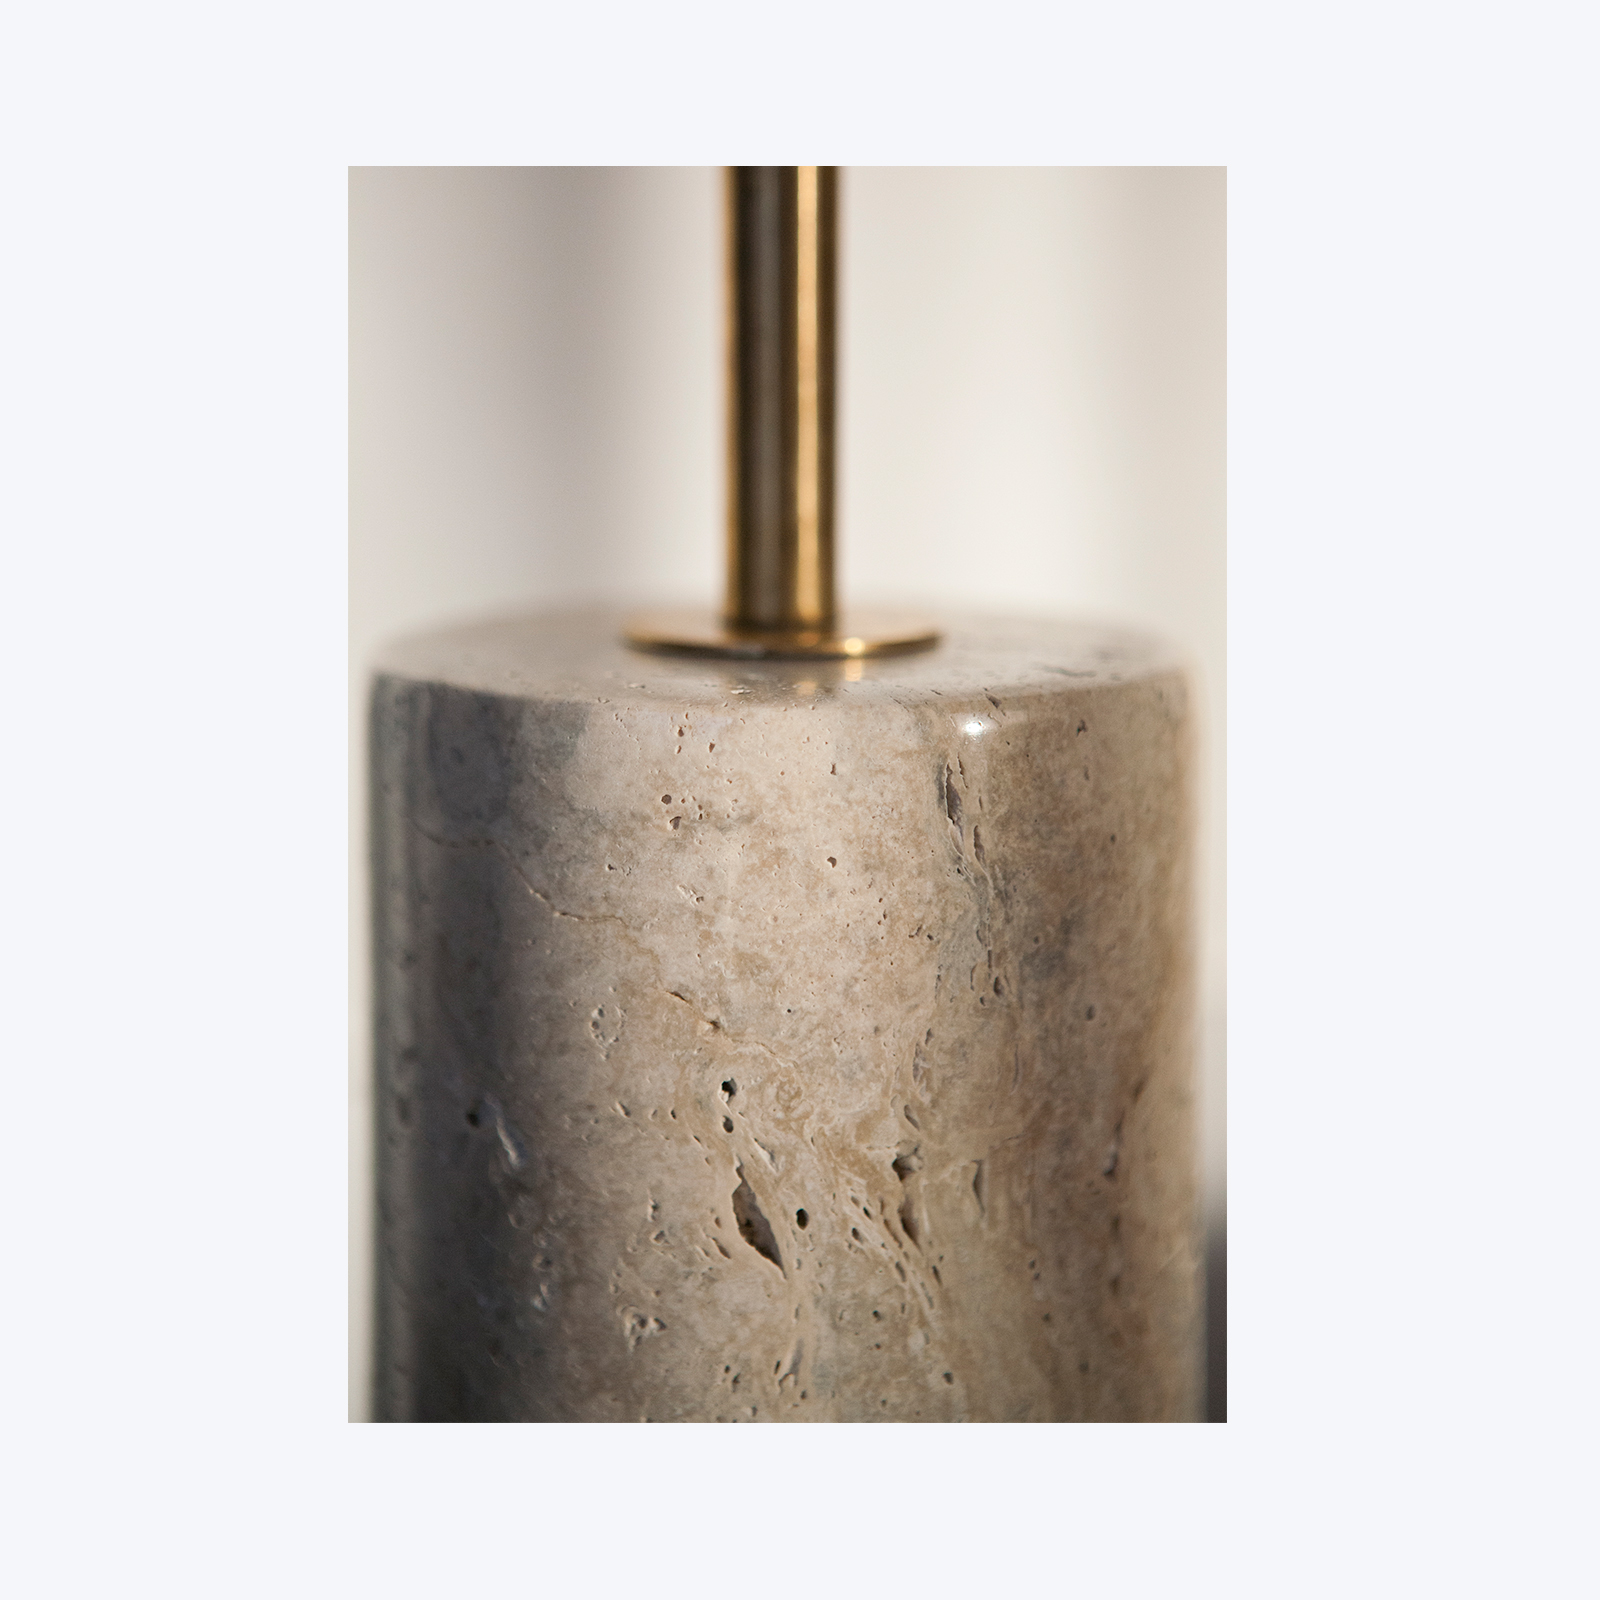 Arancini Lamp by Moda Piera in Brass and Italian Travertine, 2017, Australia